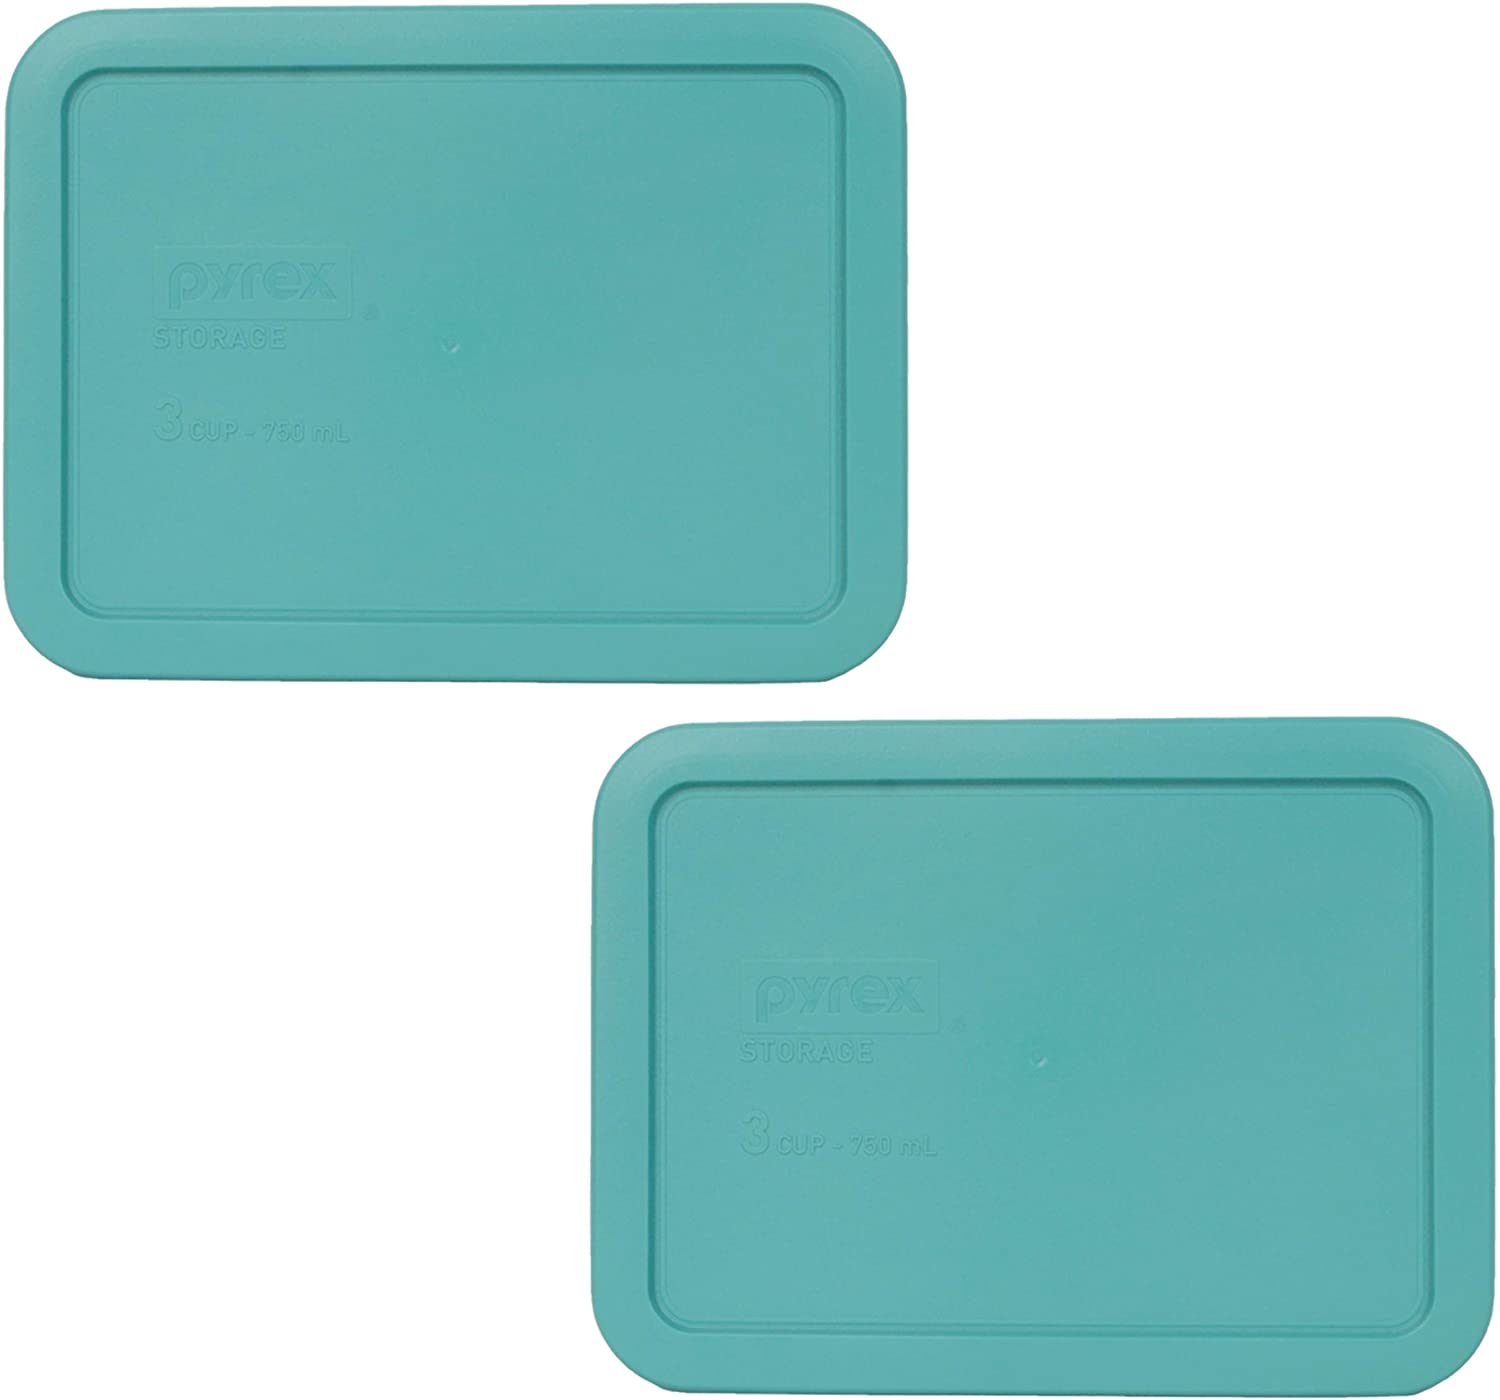 Pyrex 7210-PC 3 Cup Turquoise Rectangle Plastic Food Storage Lid - 2 Pack